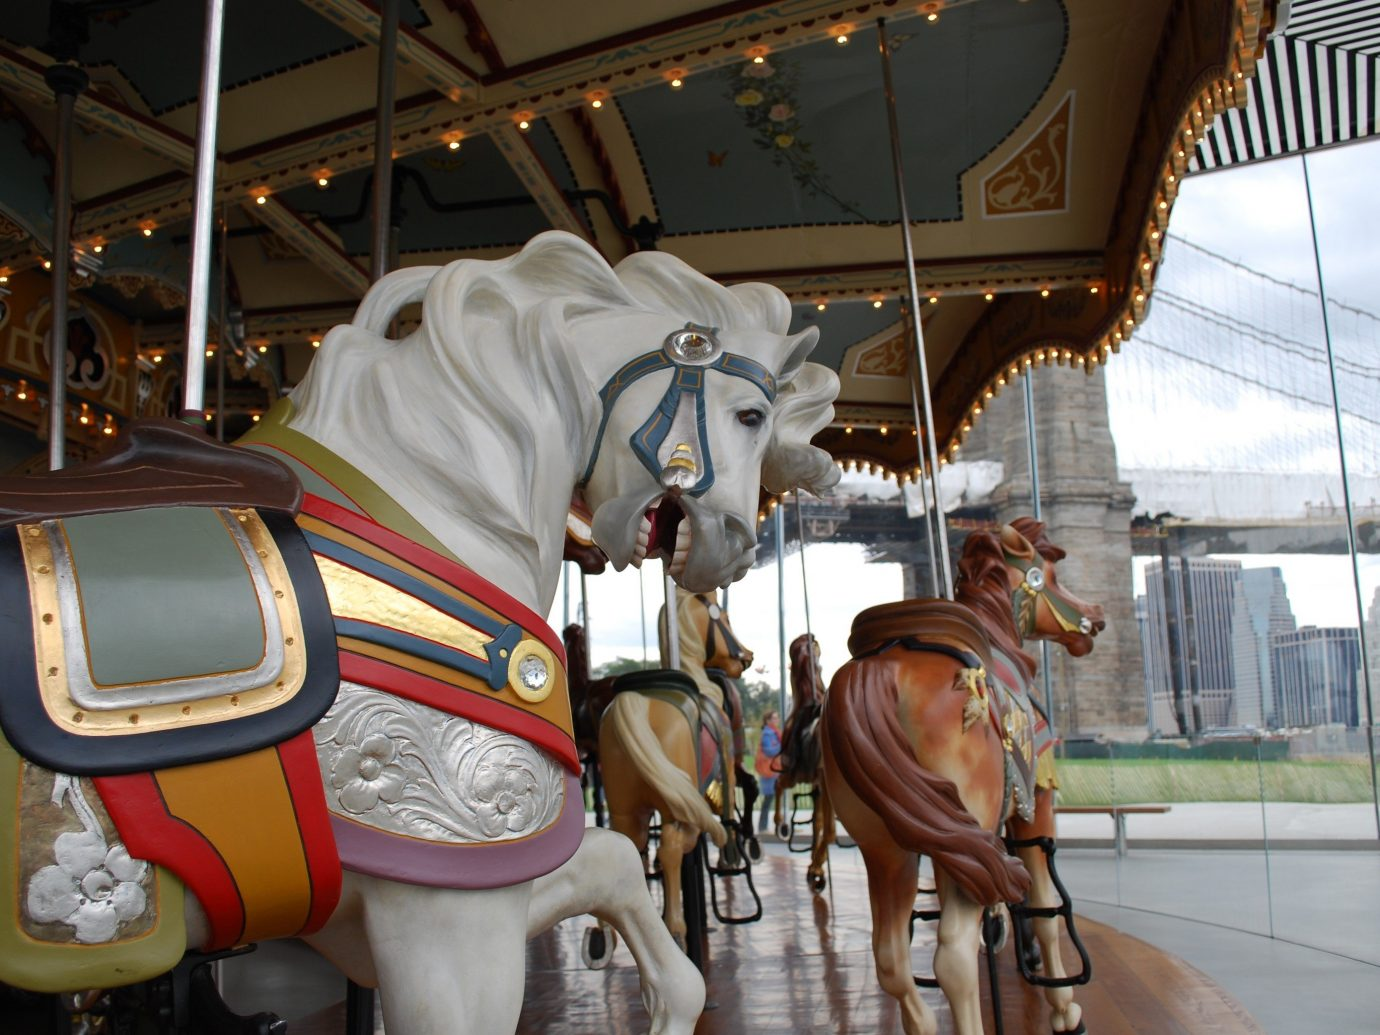 Trip Ideas amusement ride Carousel amusement park horse indoor tourist attraction horse like mammal park recreation horse harness